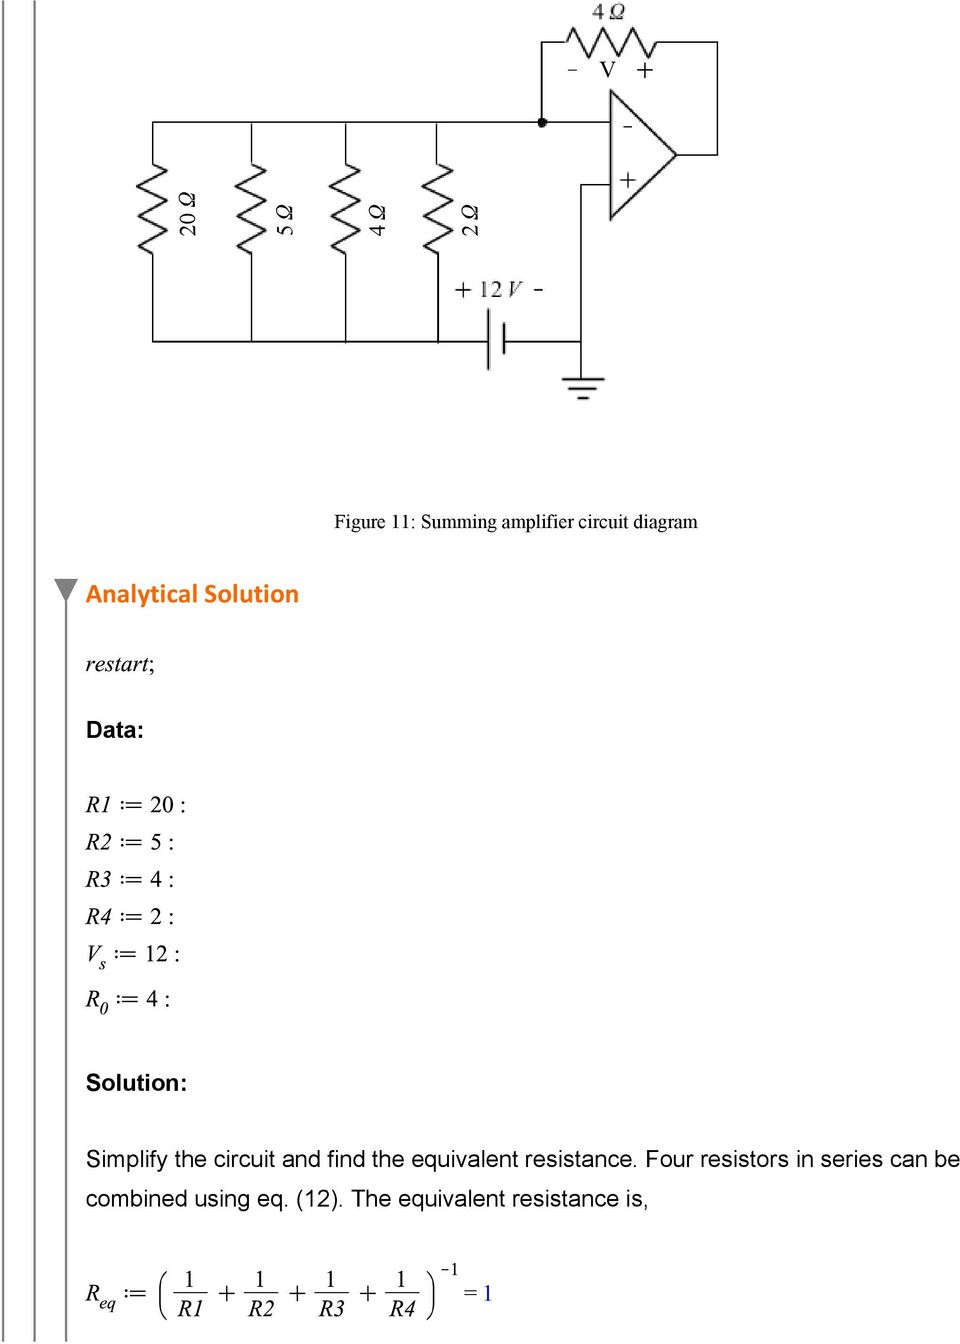 circuit and find the equivalent resistance.